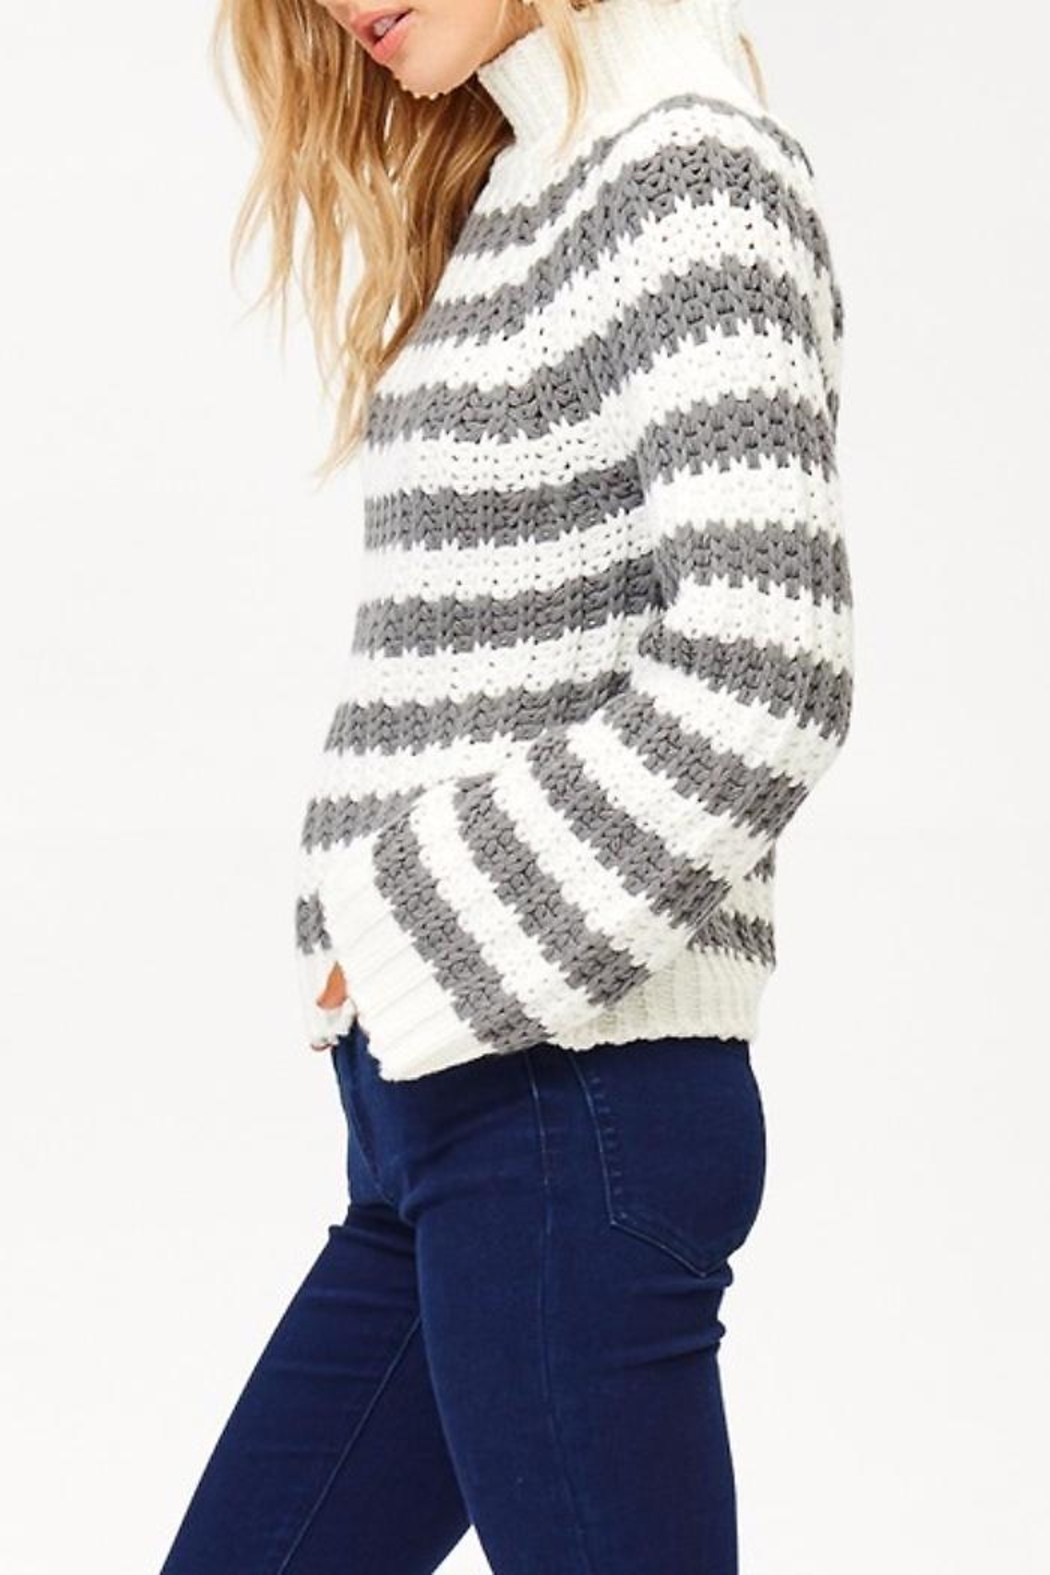 People Outfitter Wild Cat Sweater - Front Full Image